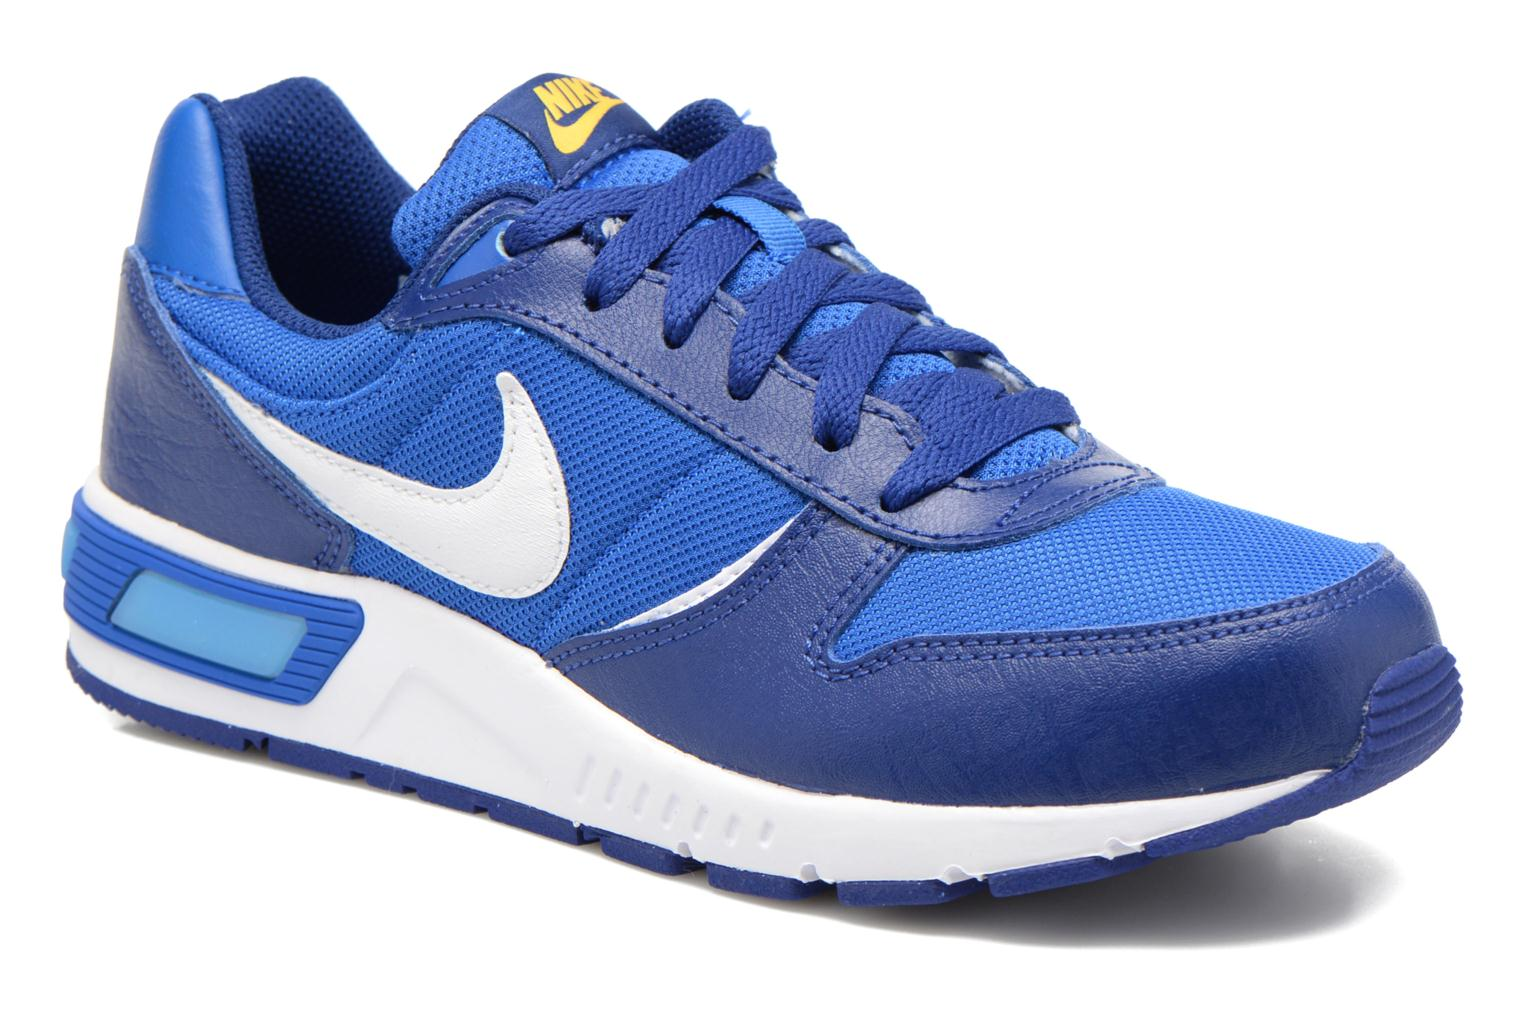 NIKE NIGHTGAZER (GS) Deep Royal Blue/Wht-Hypr Cblt